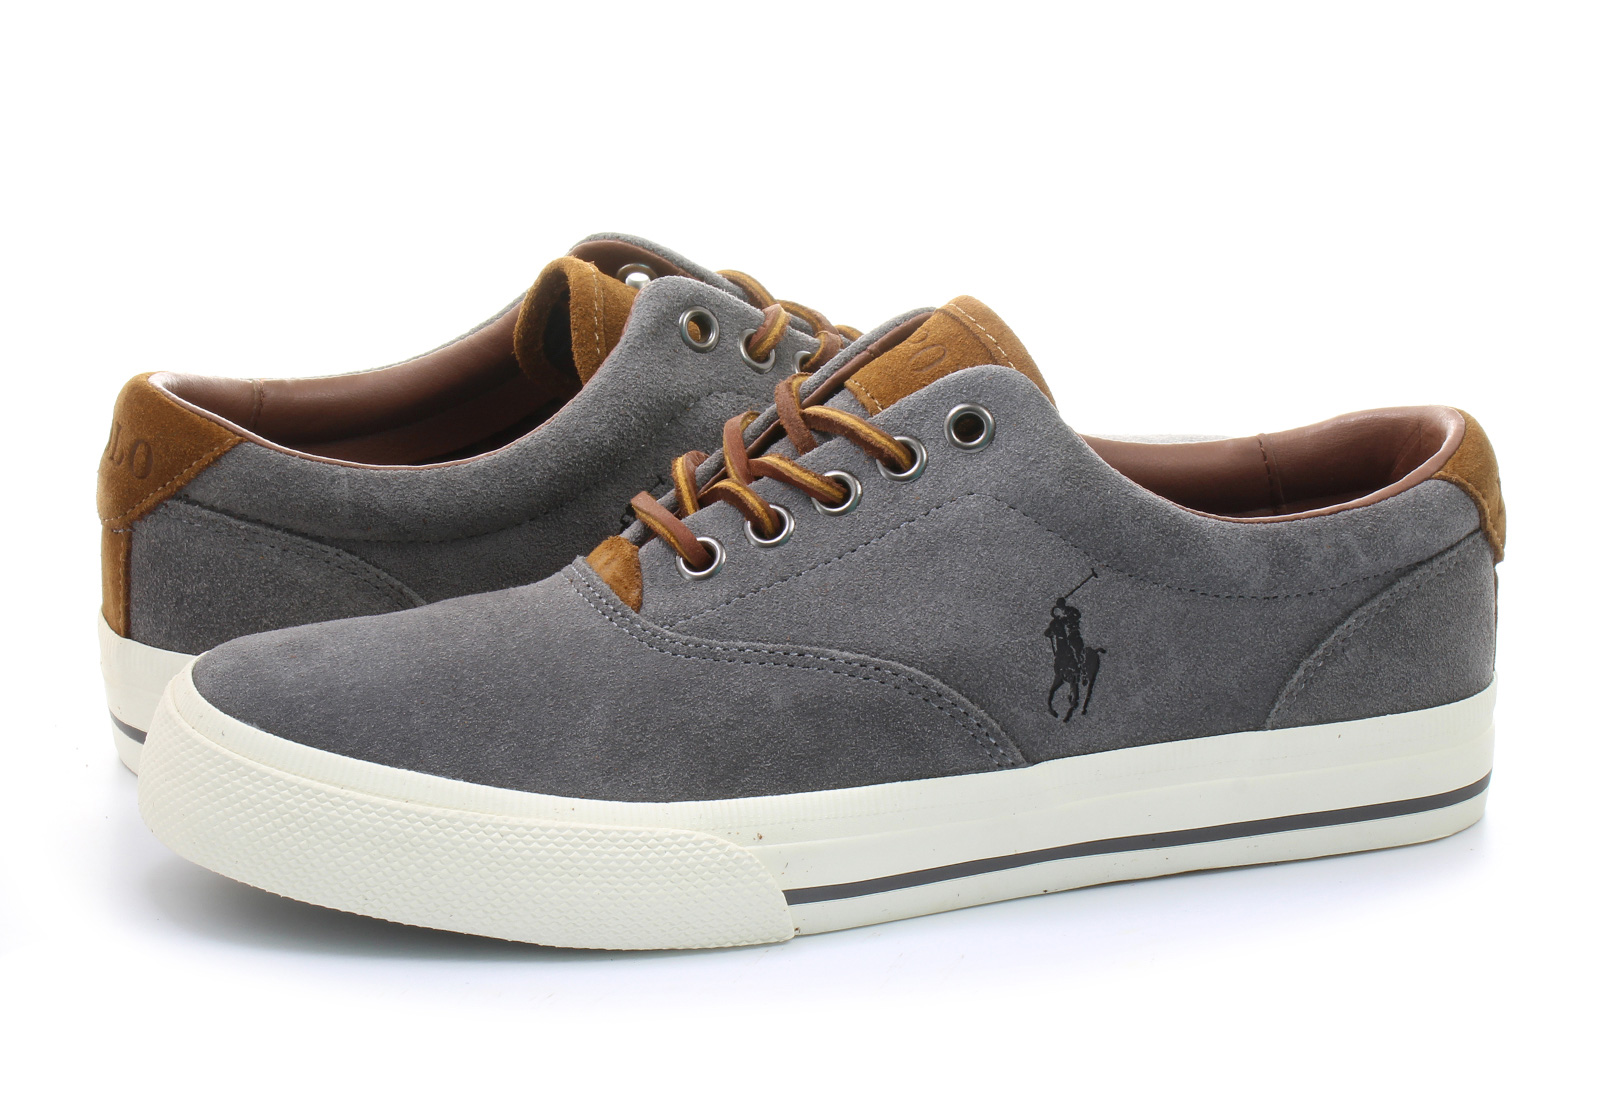 polo ralph lauren shoes vaughn 2039 r a0037 online shop for sneakers shoes and boots. Black Bedroom Furniture Sets. Home Design Ideas